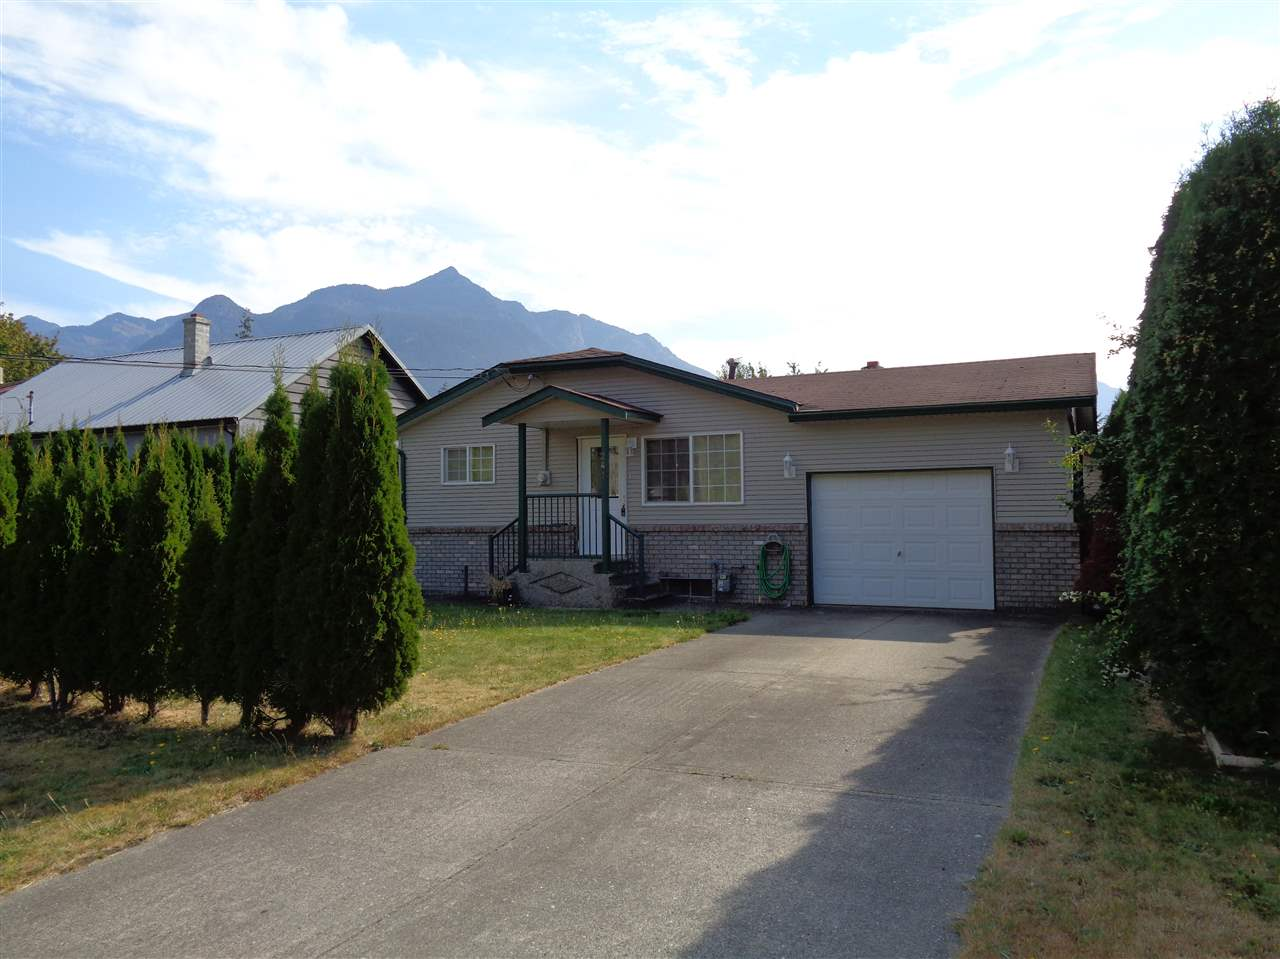 Main Photo: 241 CARIBOO Avenue in Hope: Hope Center House for sale : MLS® # R2104090